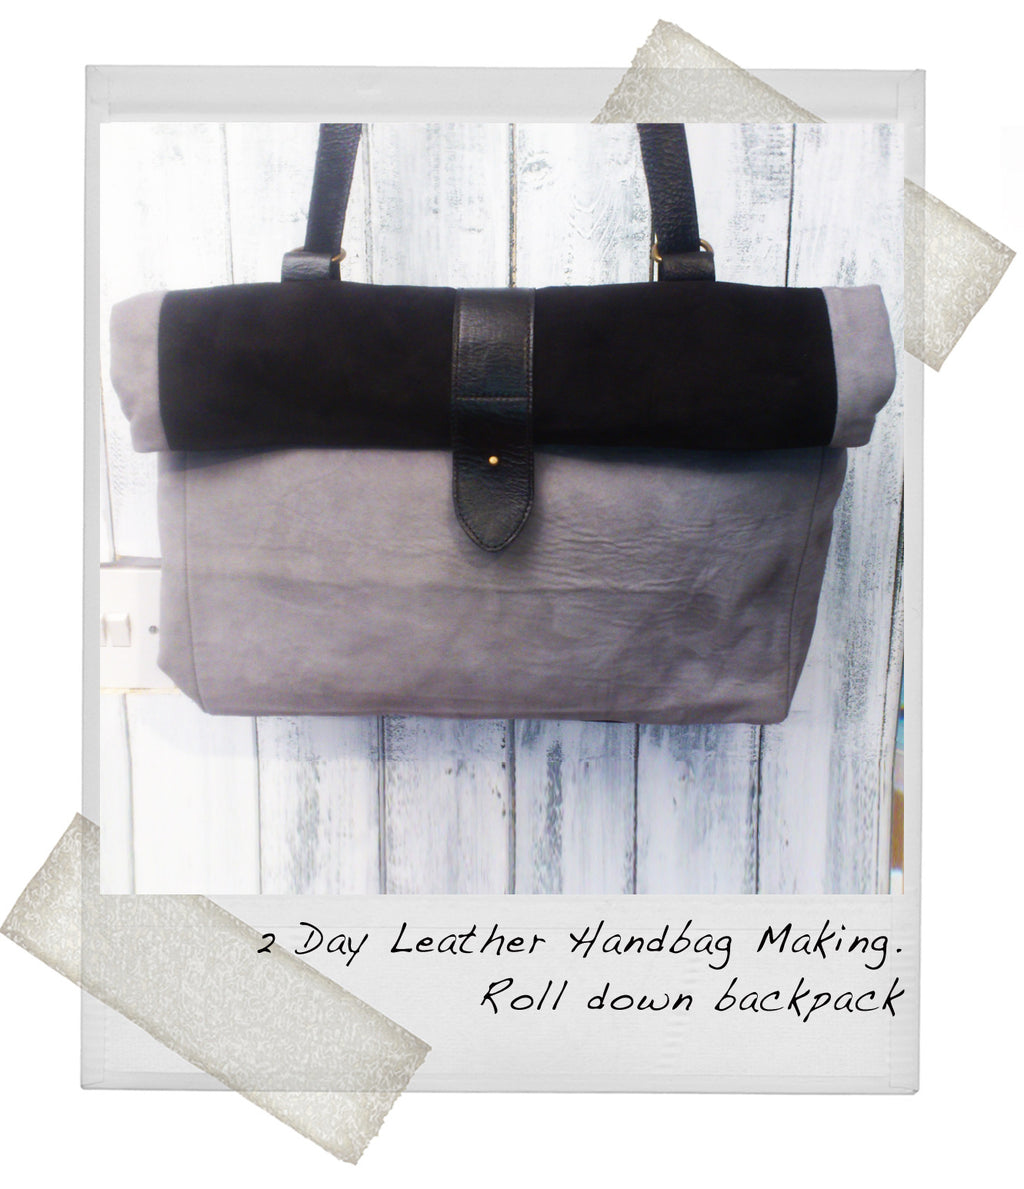 2 Day Leather Handbag making - Roll down backpack